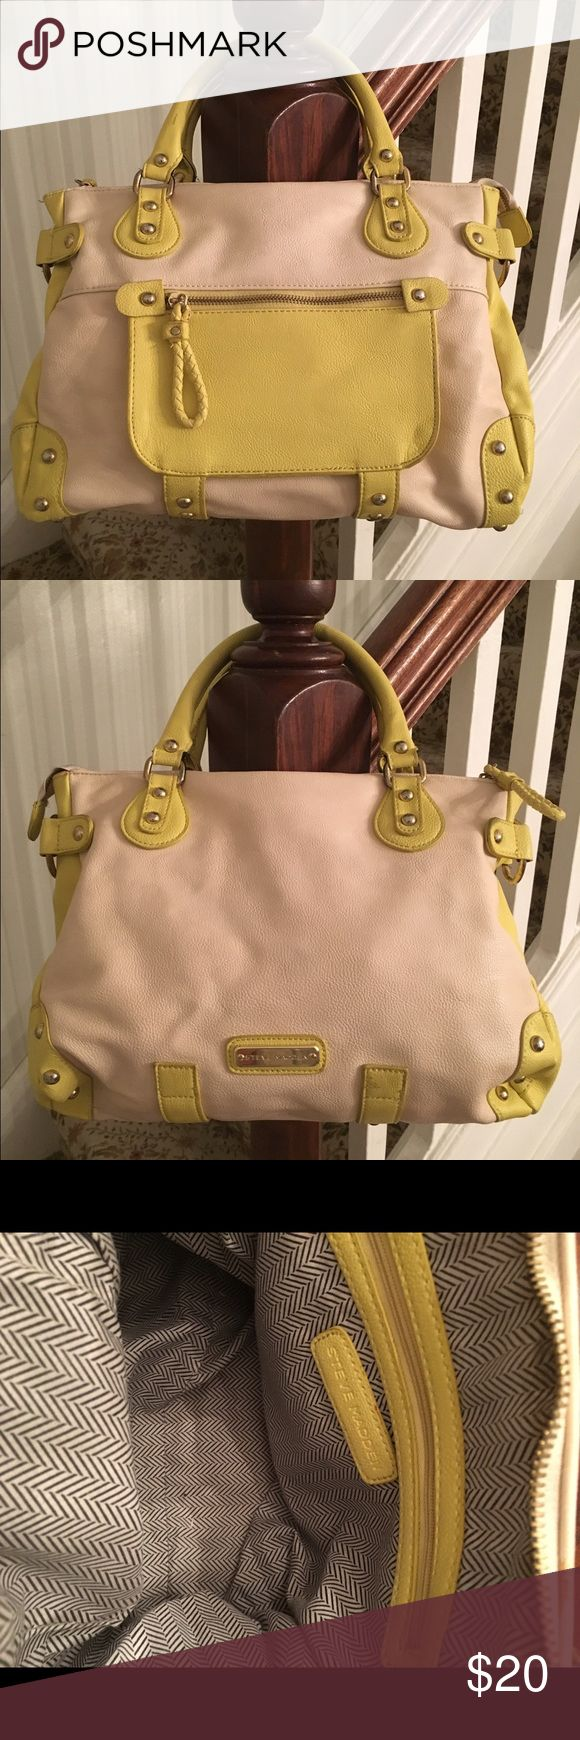 Steve Madden Neon Yellow/Beige Purse Steve Madden neon yellow/beige purse. Has smaller straps and one large strap to wear as broad body bag; zipper functions properly; in great condition; please enlarge photos to see details; if you have any questions, please ask before purchasing Steve Madden Bags Shoulder Bags